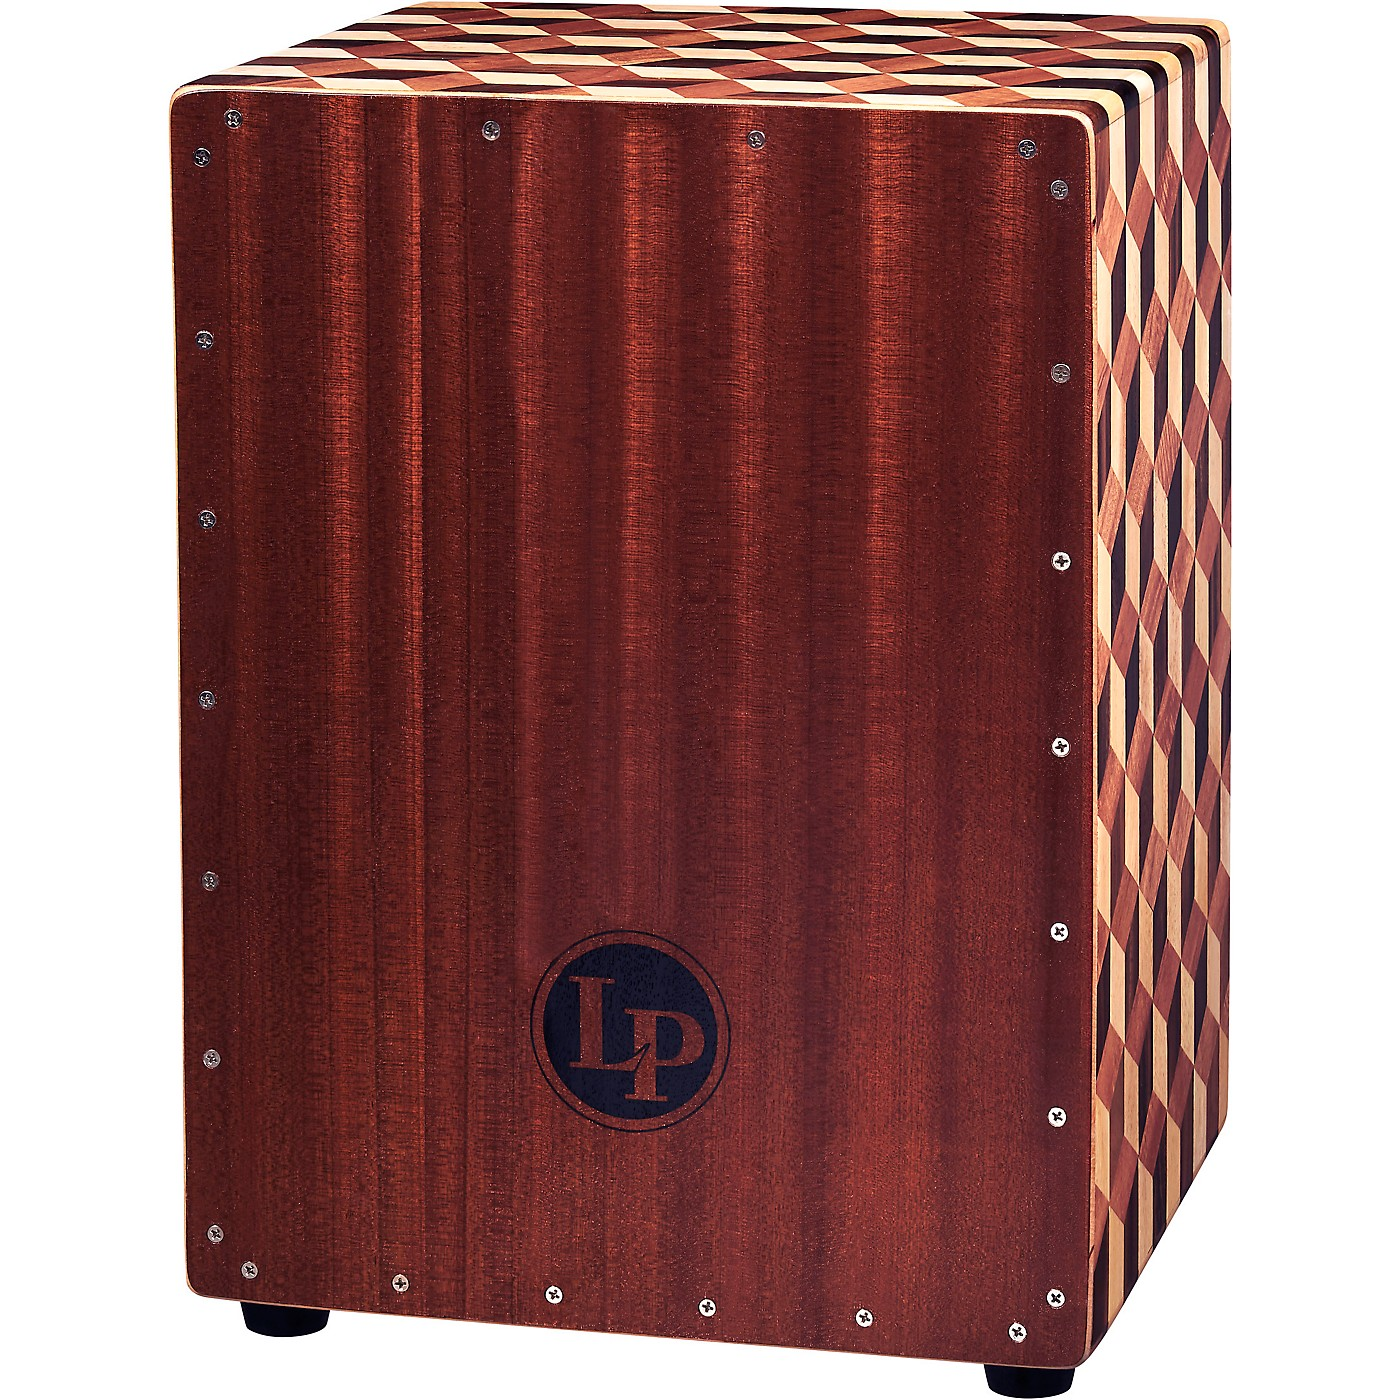 LP 3D Cube String Cajon with Bag thumbnail